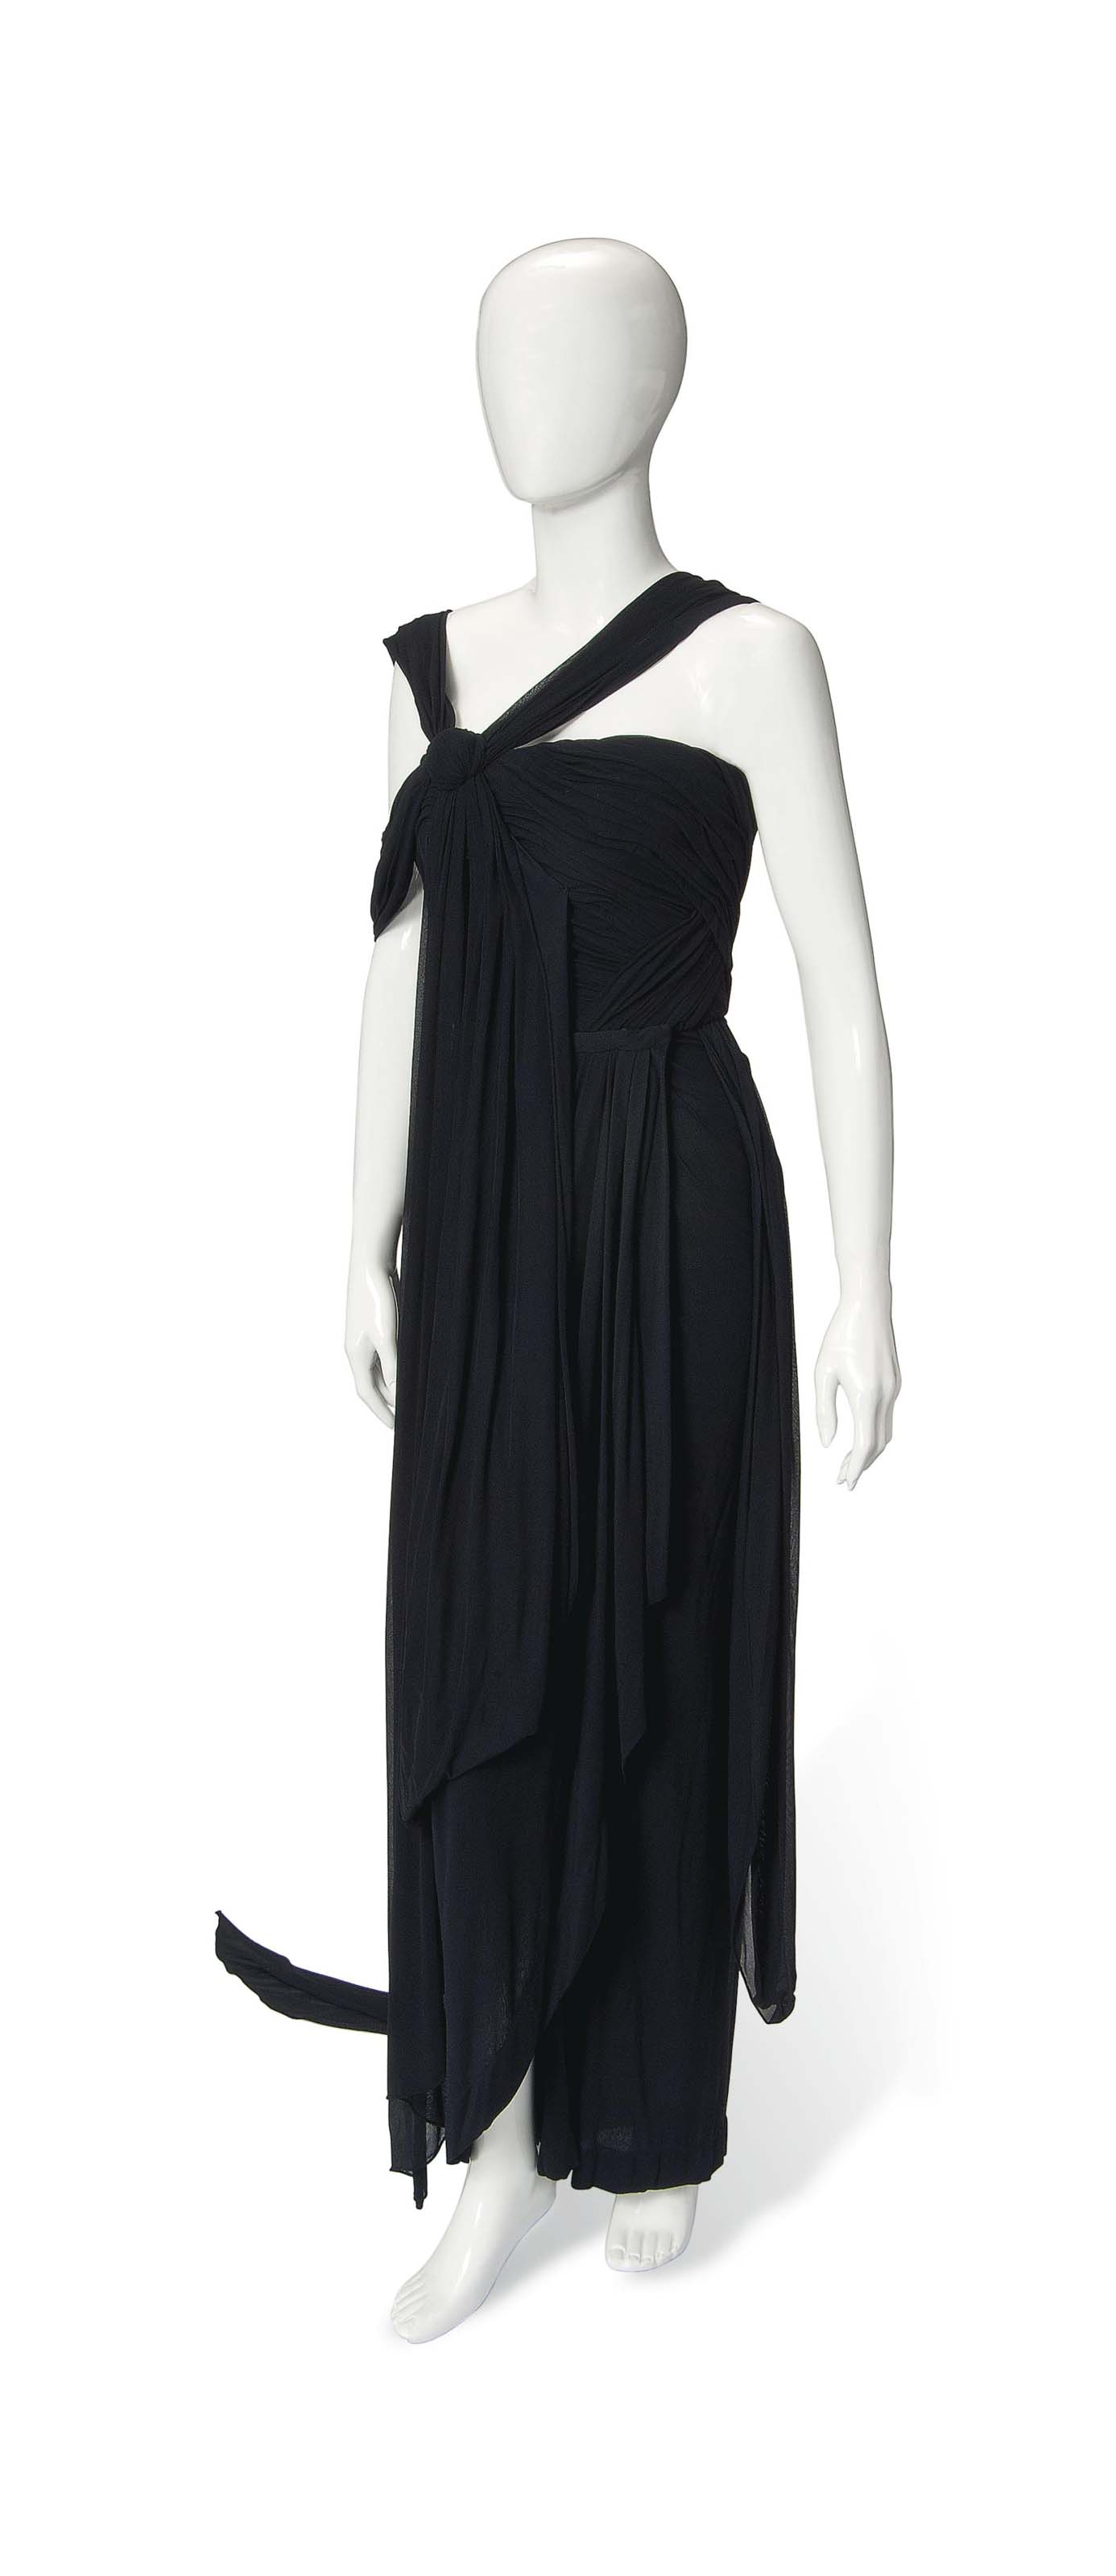 A JEAN PAUL GAULTIER GRECIAN DRAPED EVENING GOWN OF BLACK SILK JERSEY